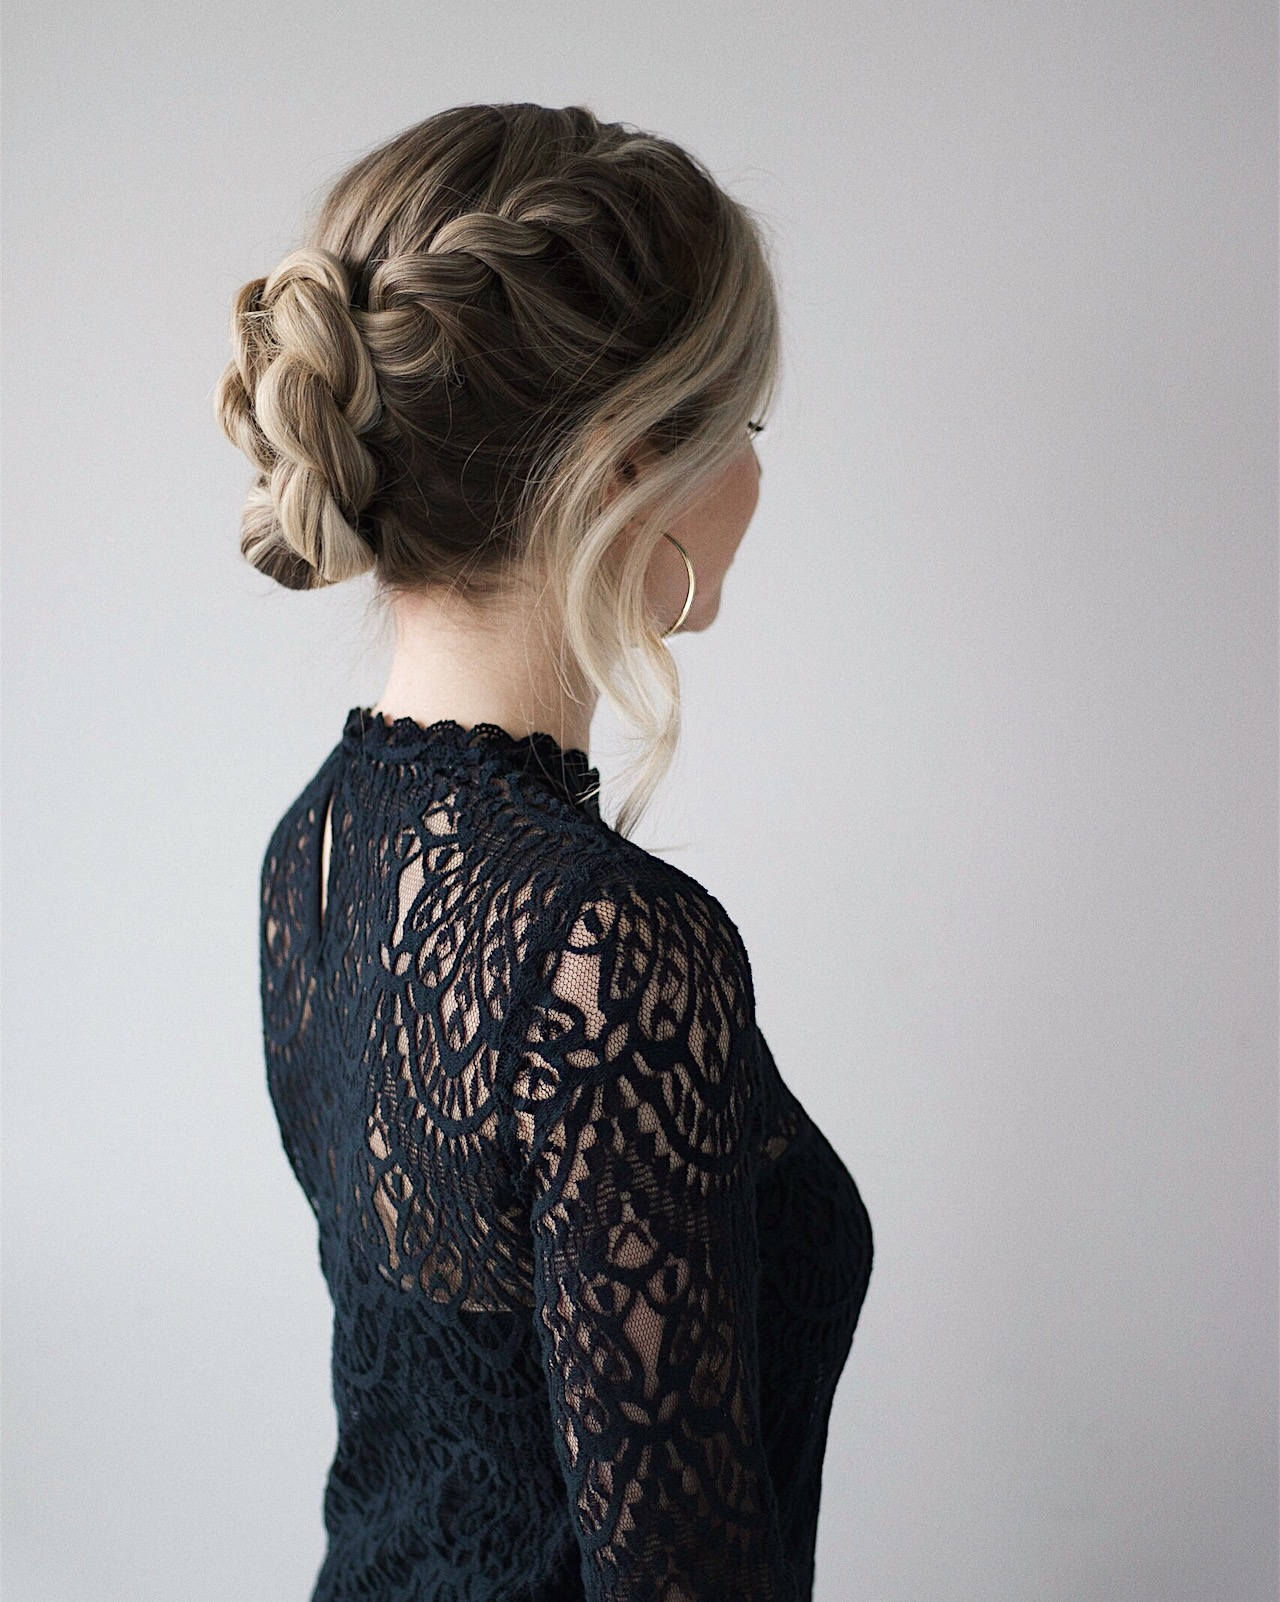 Braided French Twist Hair Tutorial | www.alexgaboury.com